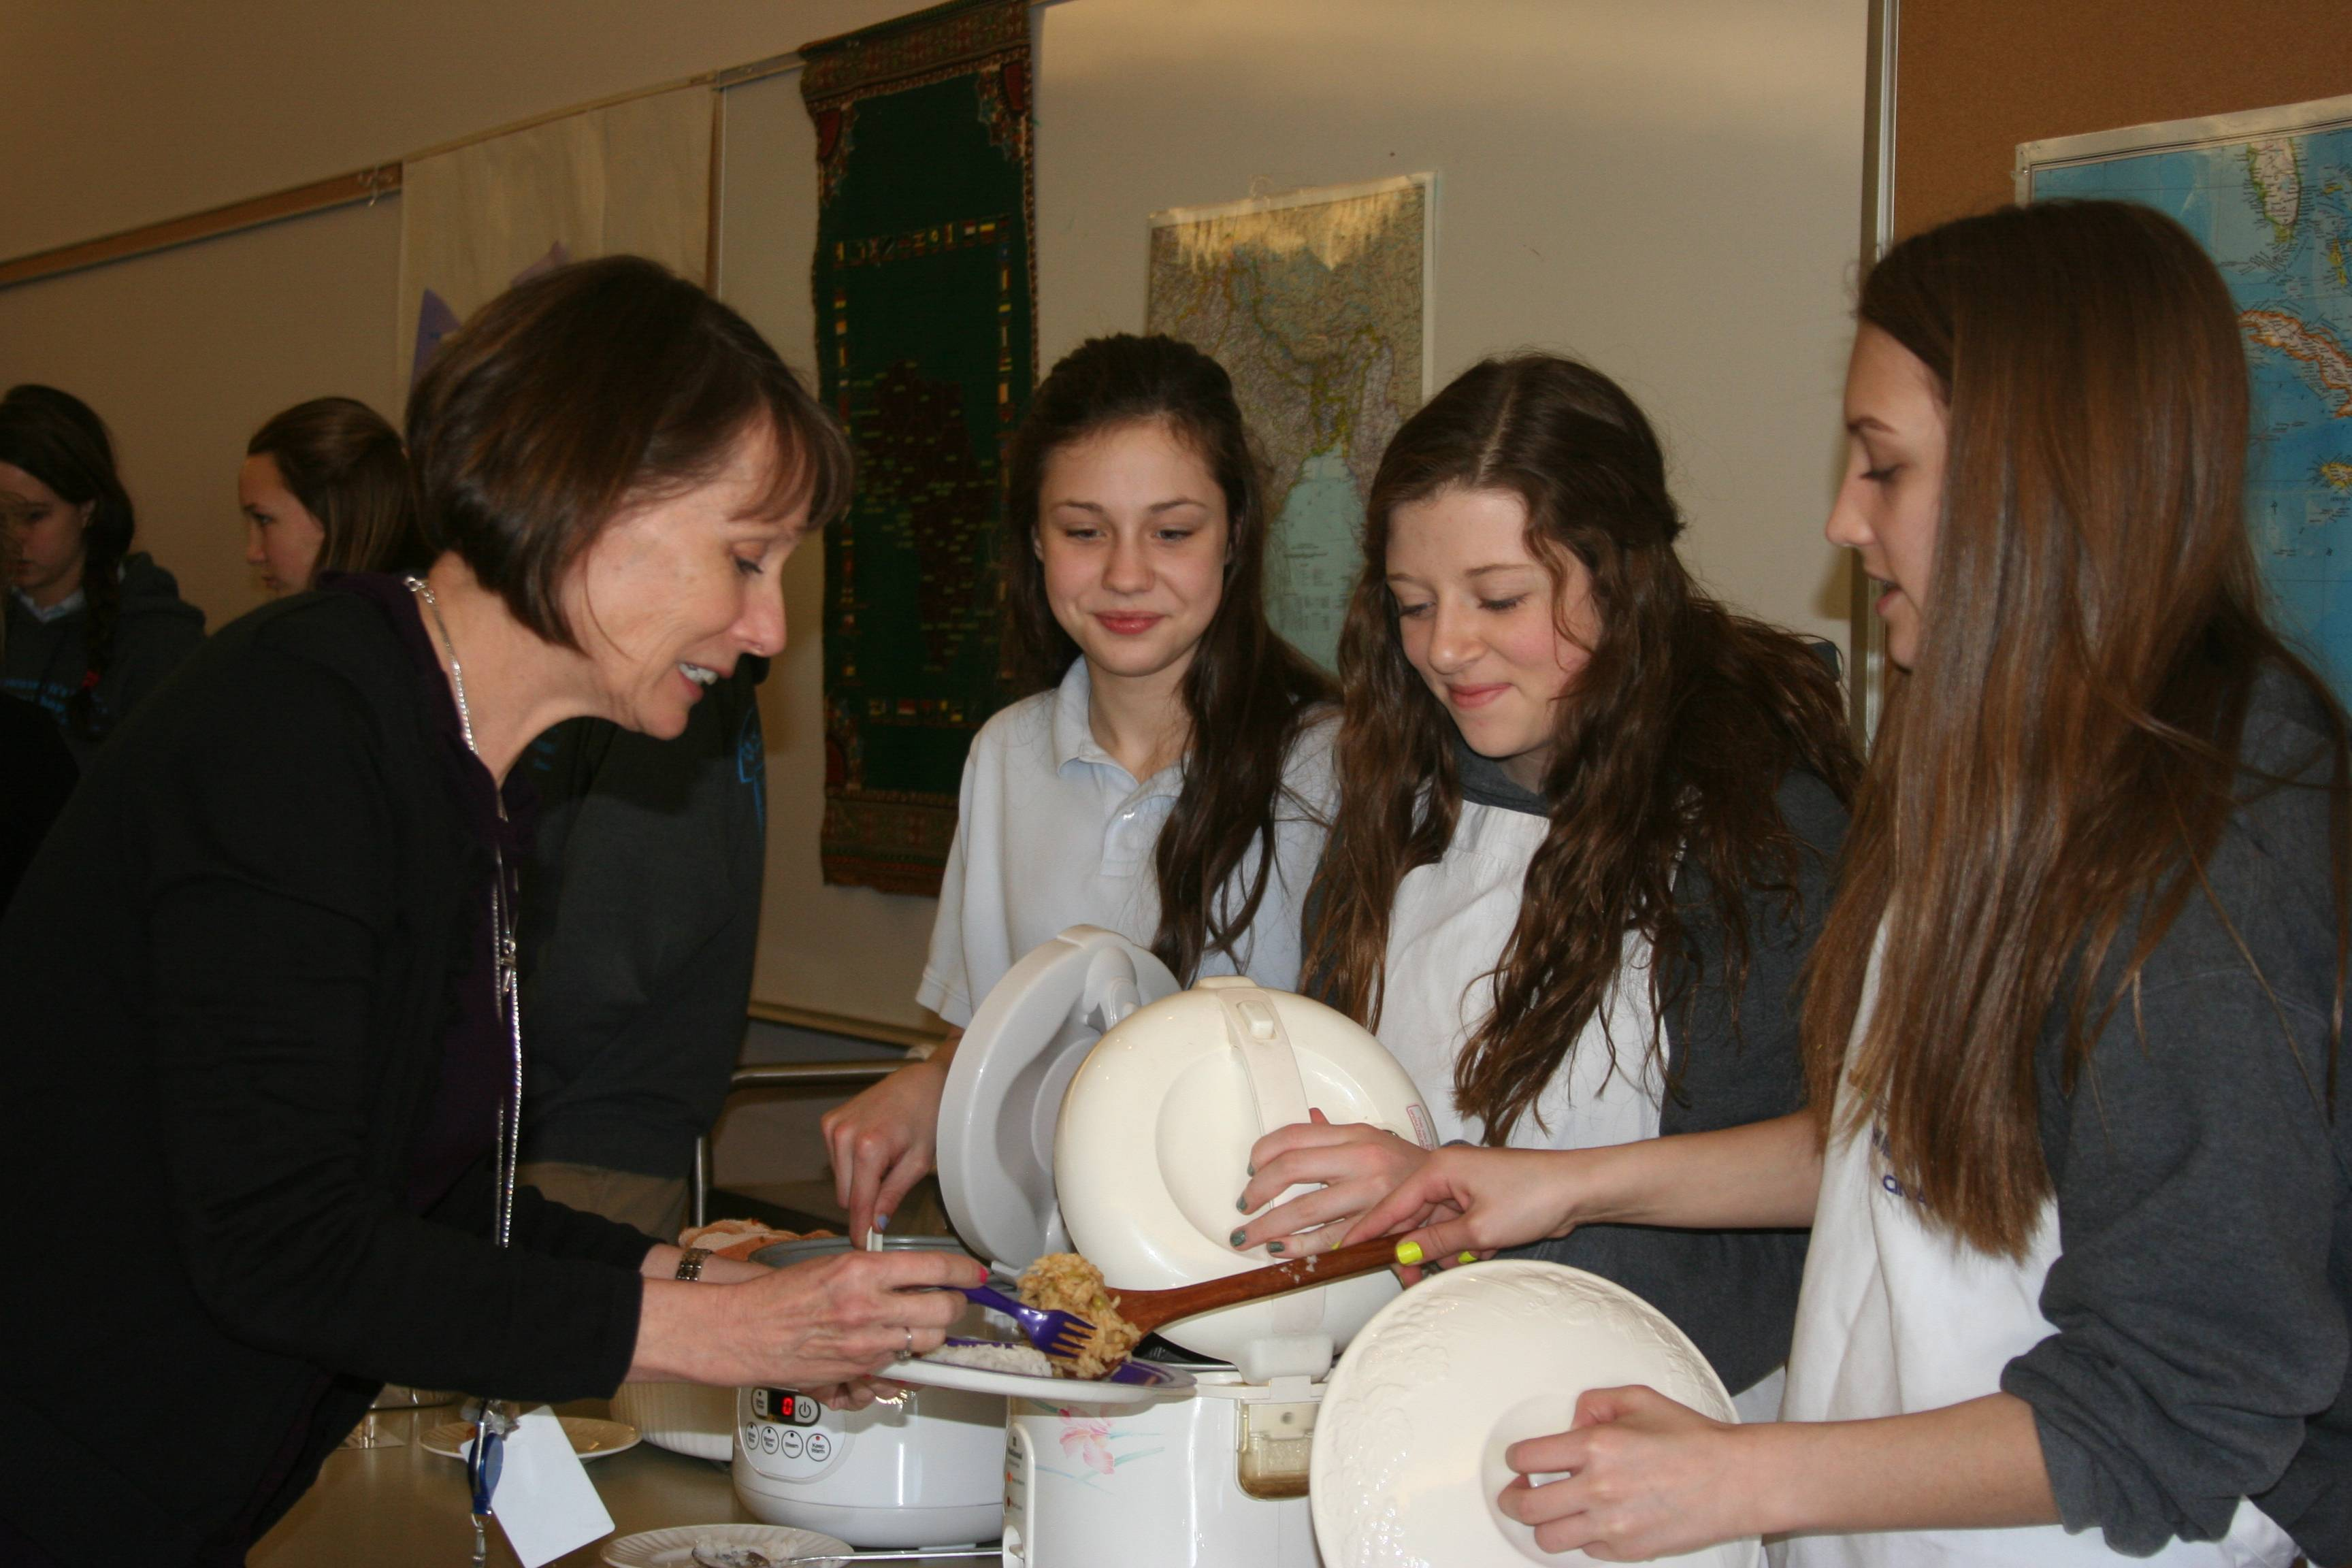 Holy Family Academy 8th grade students raise awareness of world poverty by cooking meals typically found in developing countries. Pictured from left, Bethany, Shannon and Mia serving Mrs. Roberta Muran.